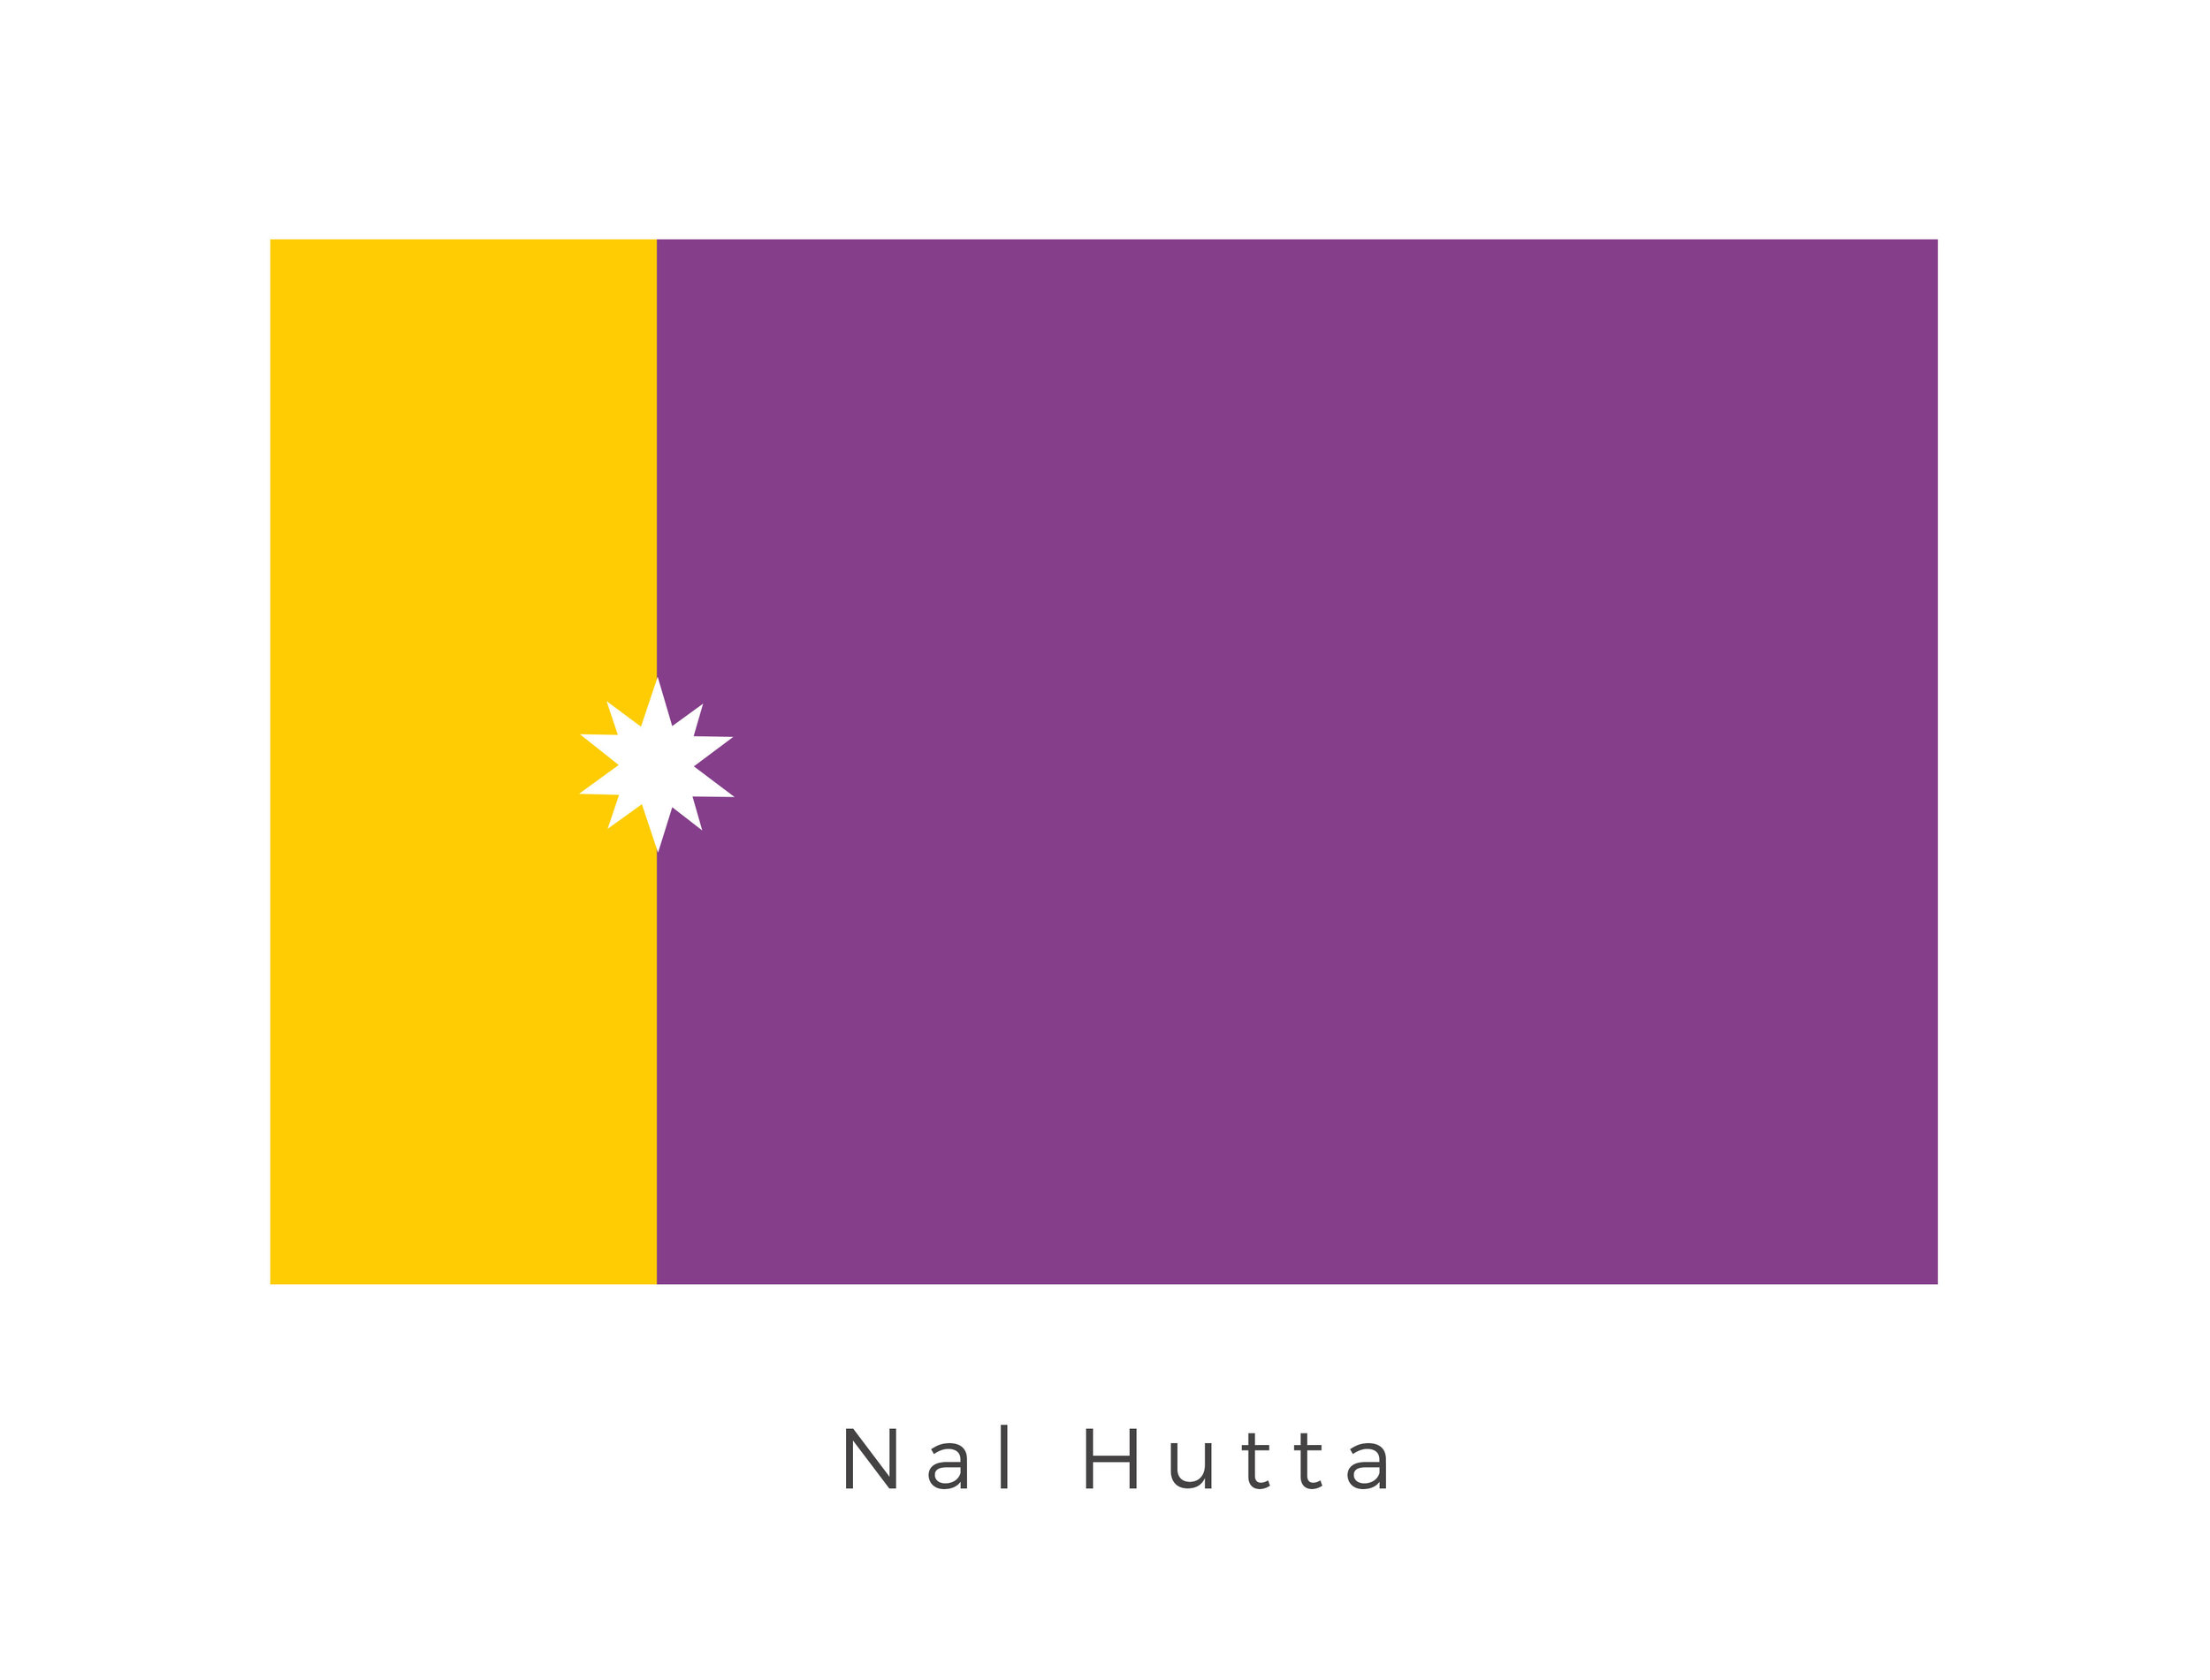 Nal Hutta  (Glorious Jewel in Huttese), also known simply as Hutta, was the capital of Hutt Space and was located in the Y'Toub system. It was formerly known as Evocar and was the original home world of the Evocii, who were ousted by the Hutts in 15,000 BBY, who migrated from their original home world of Varl along with their servants the t'landa Til. The planet was controlled by the ancient ruling Hutt families, who also ruled its moon Nar Shaddaa from Nal Hutta. The purple and gold of the flag represents the ancient ruling Hutt families while the star symbol represents the planet itself.